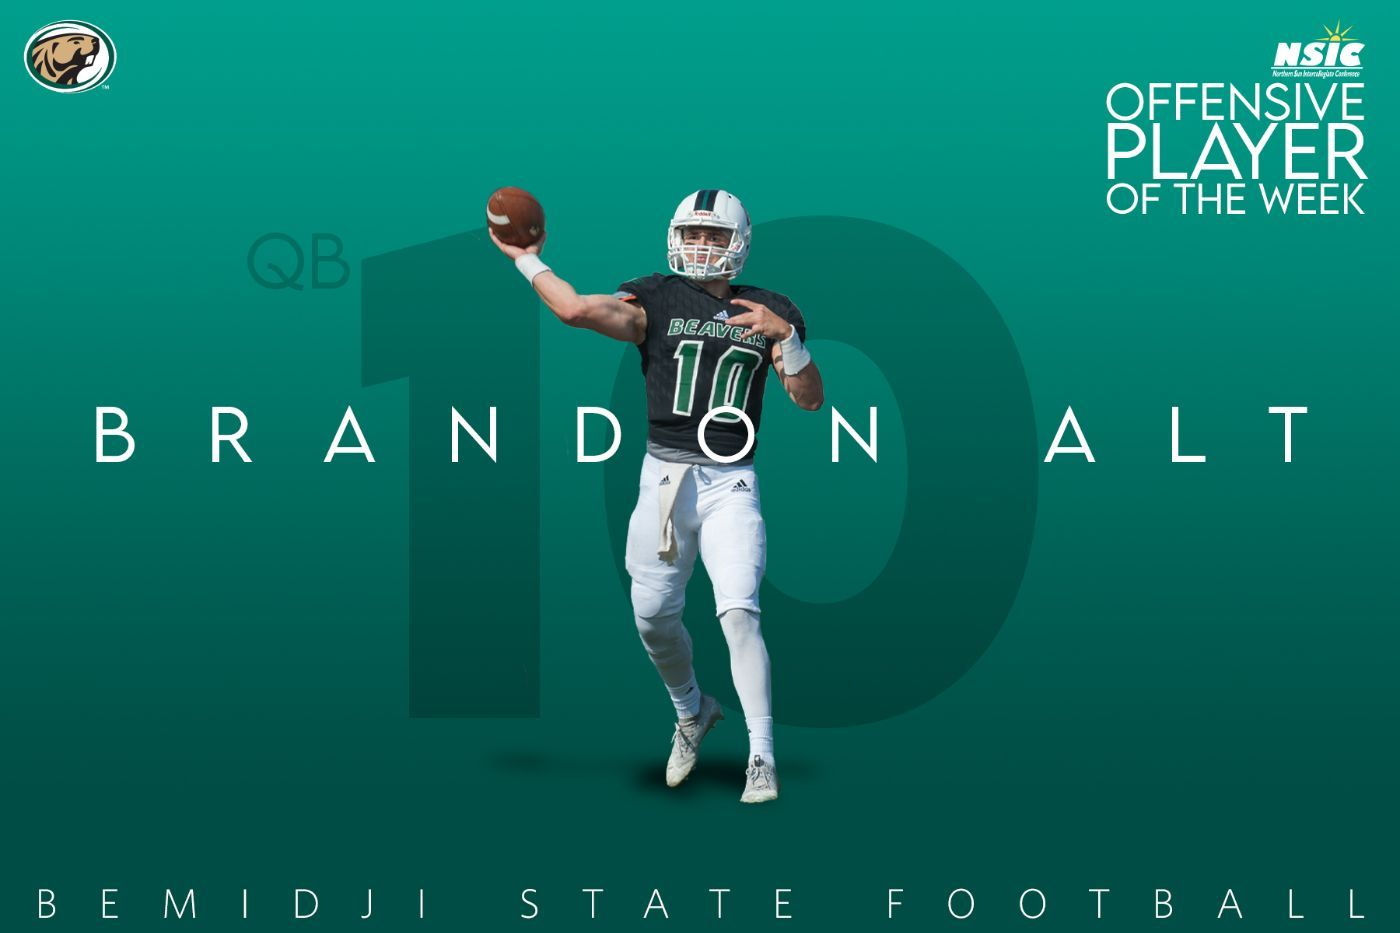 Alt named NSIC Offensive Player of the Week after 449 yards, 5 touchdowns